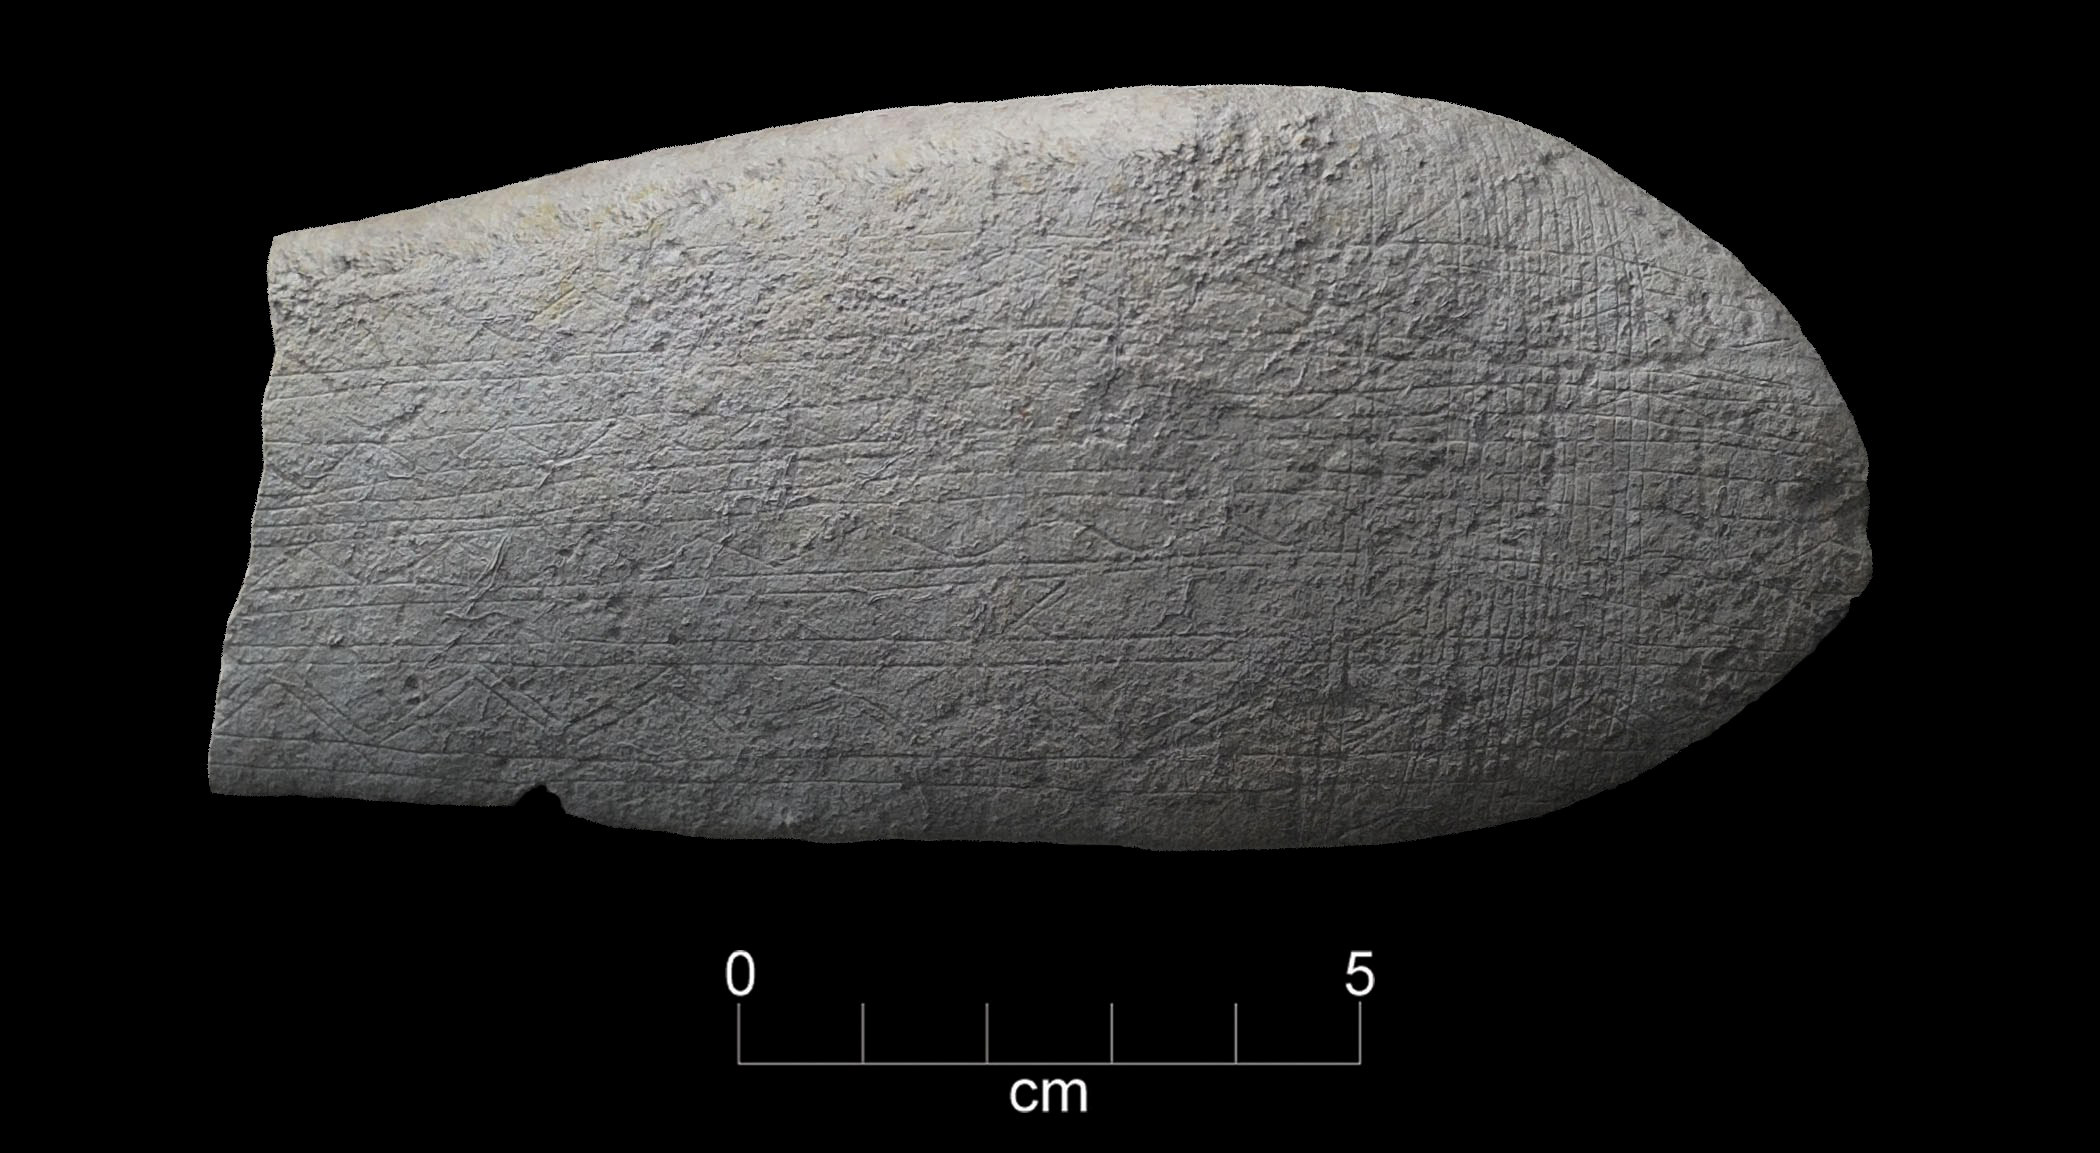 Geometric engravings on a stone found at the Gault site